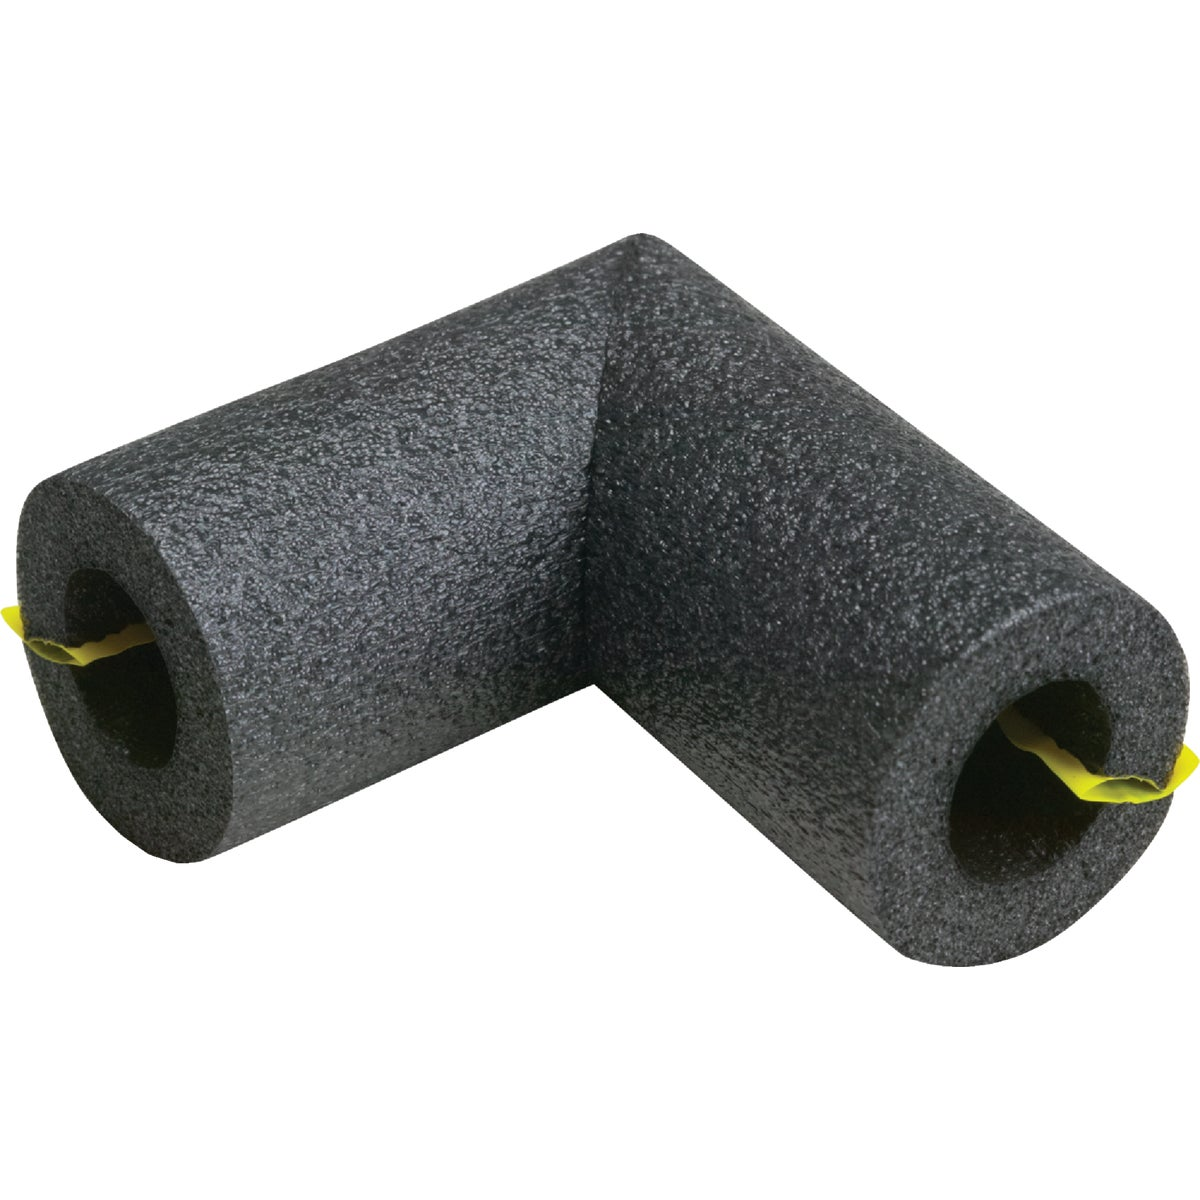 "1/2"" ELBOW INSULATION - PF38058T2 by I T P Ltd"